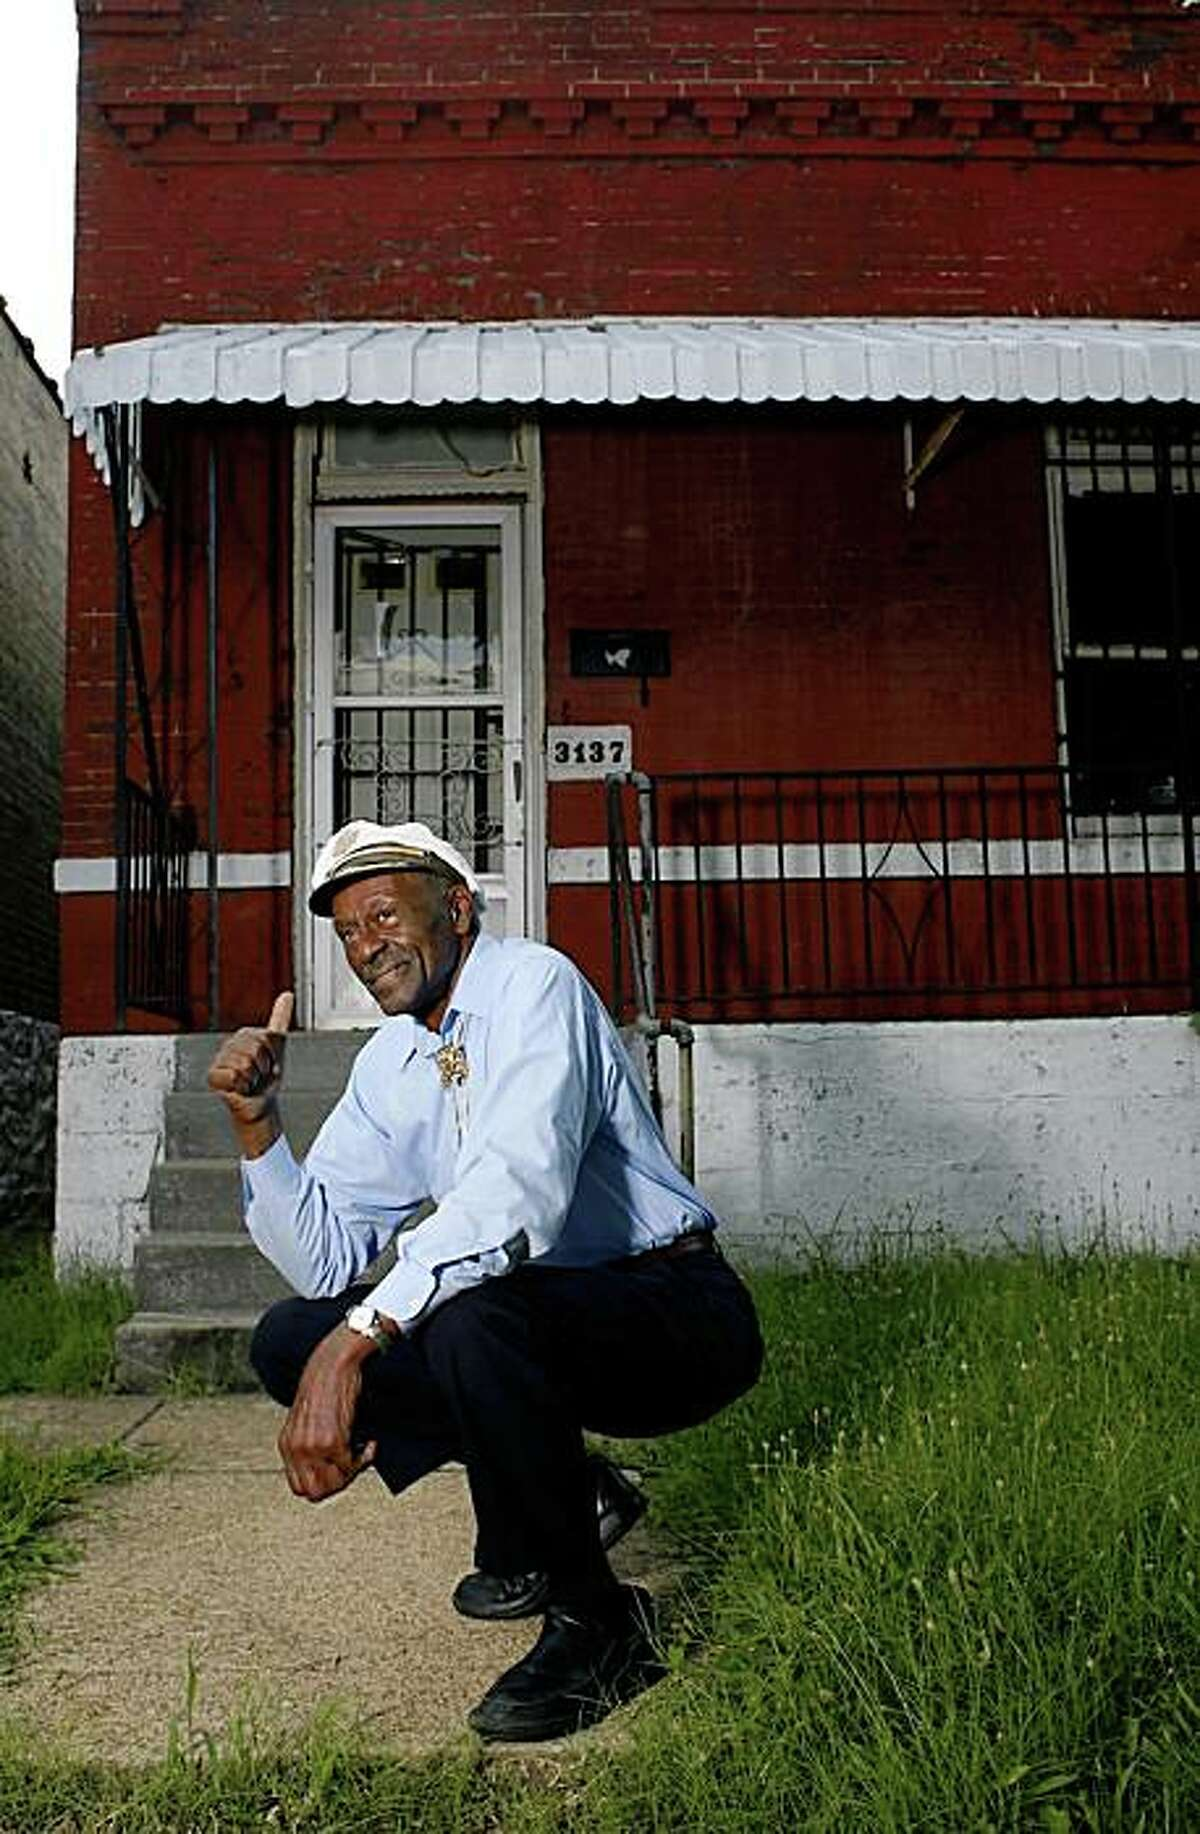 25. St. Louis, $31,275.49. Chuck Berry's house, shown here with Berry, isn't for sale, as far as we know.